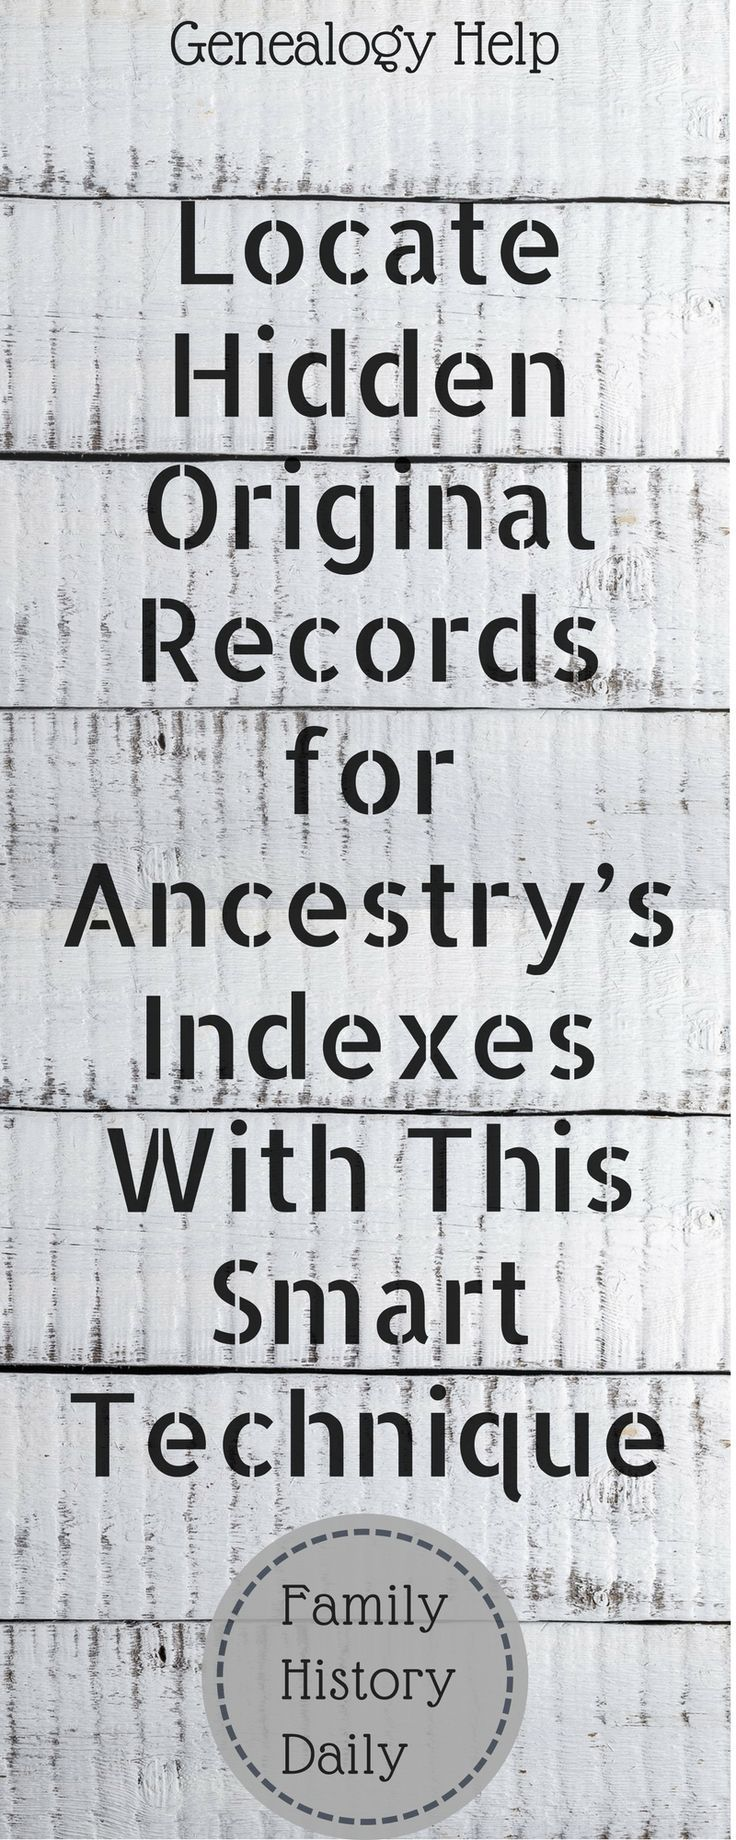 How to find hidden original records for Ancestry's indexes to use in your genealogy research.